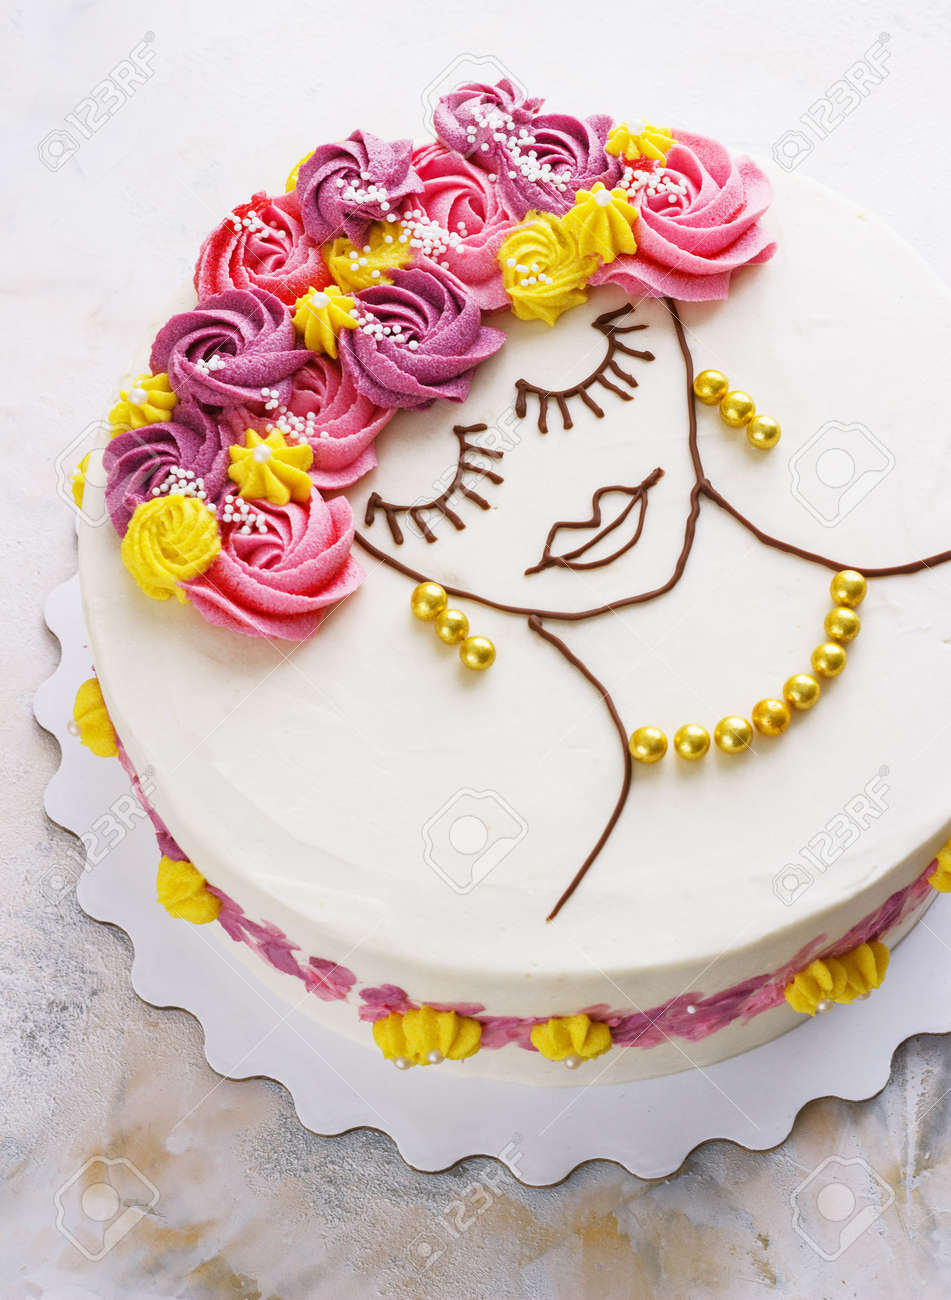 Festive Cake With Cream Flowers And A Girl Face On Light Background Modern